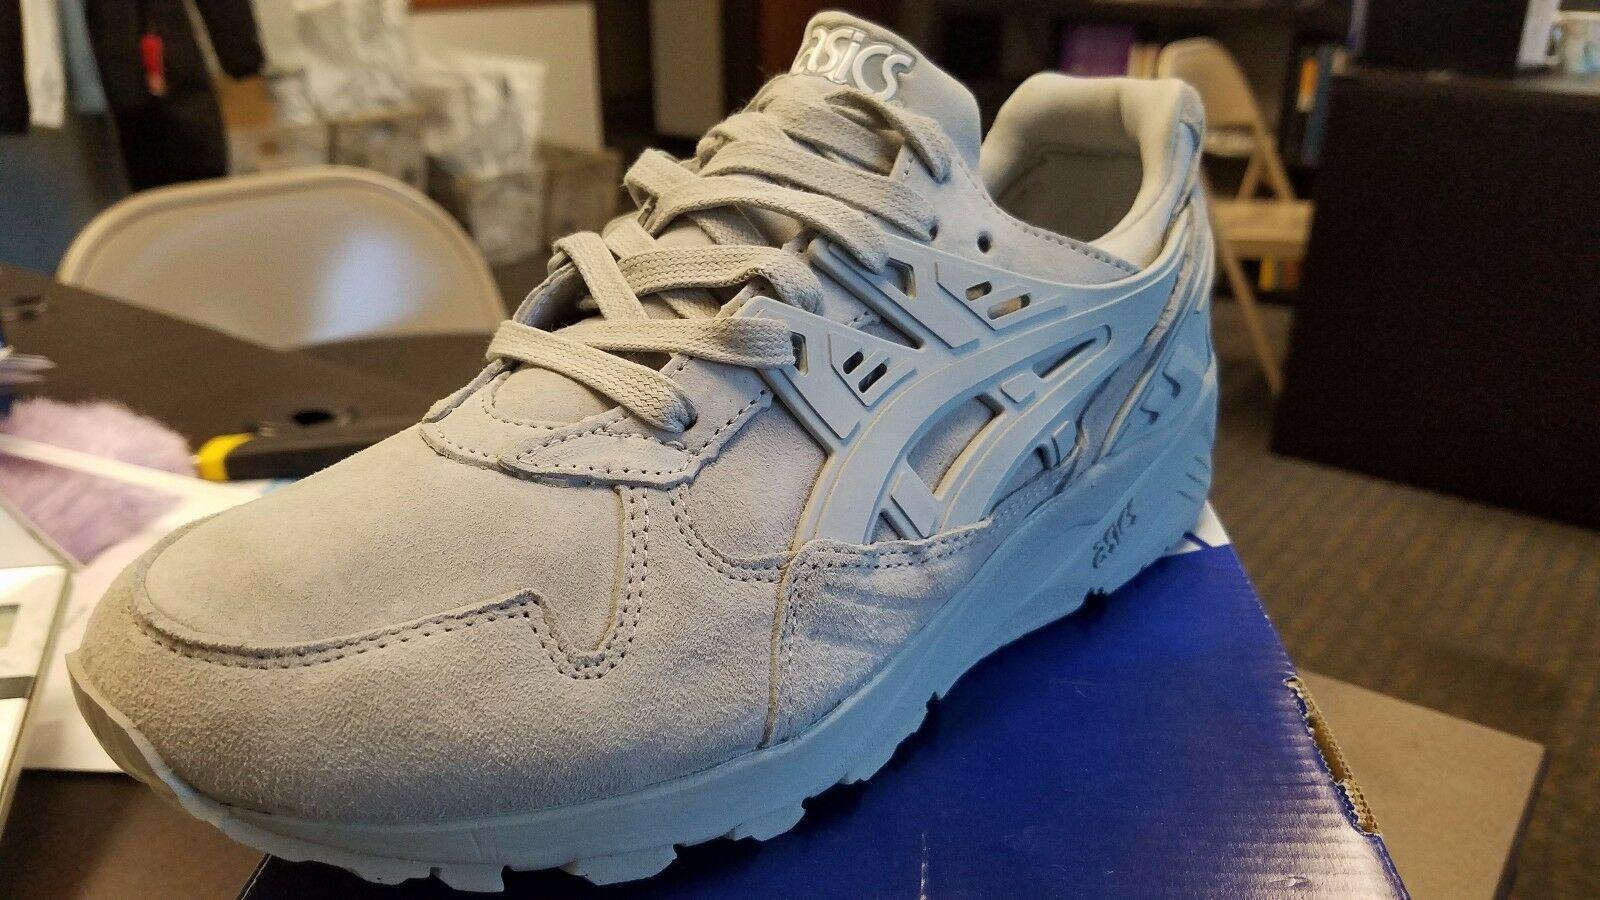 Brand New Asics Onitsuka Tiger GEL-KAYANO TRAINER MEN H6C0L-1313 NEW in Box